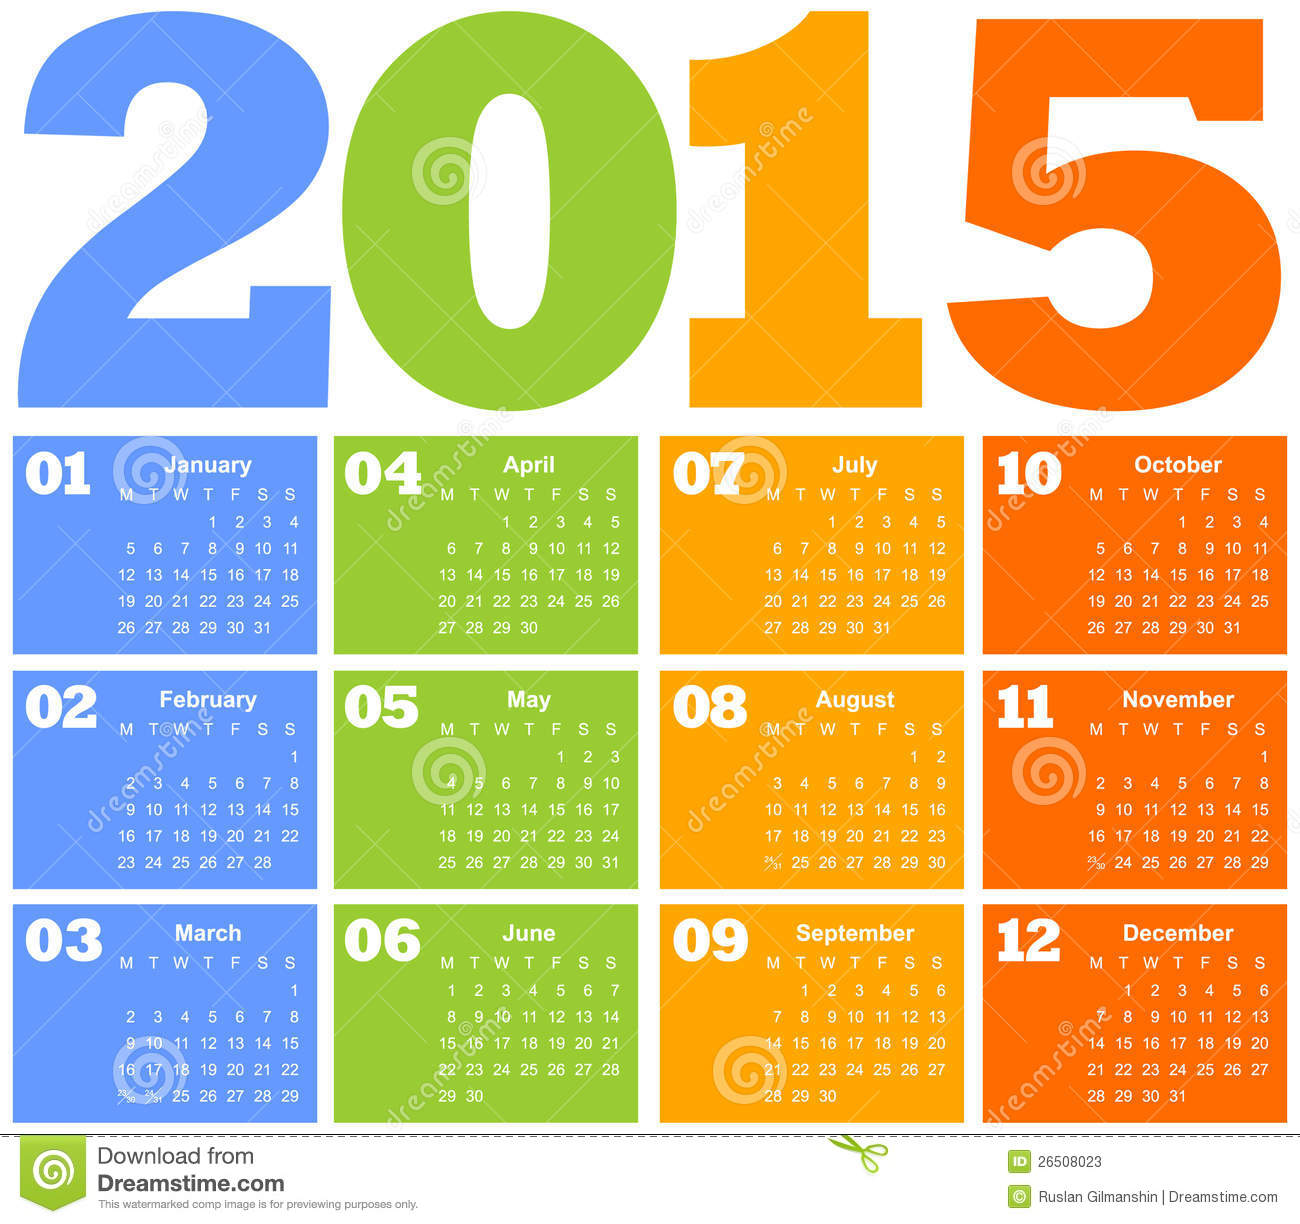 http://www.dreamstime.com/stock-photos-calendar-year-2015-image26508023